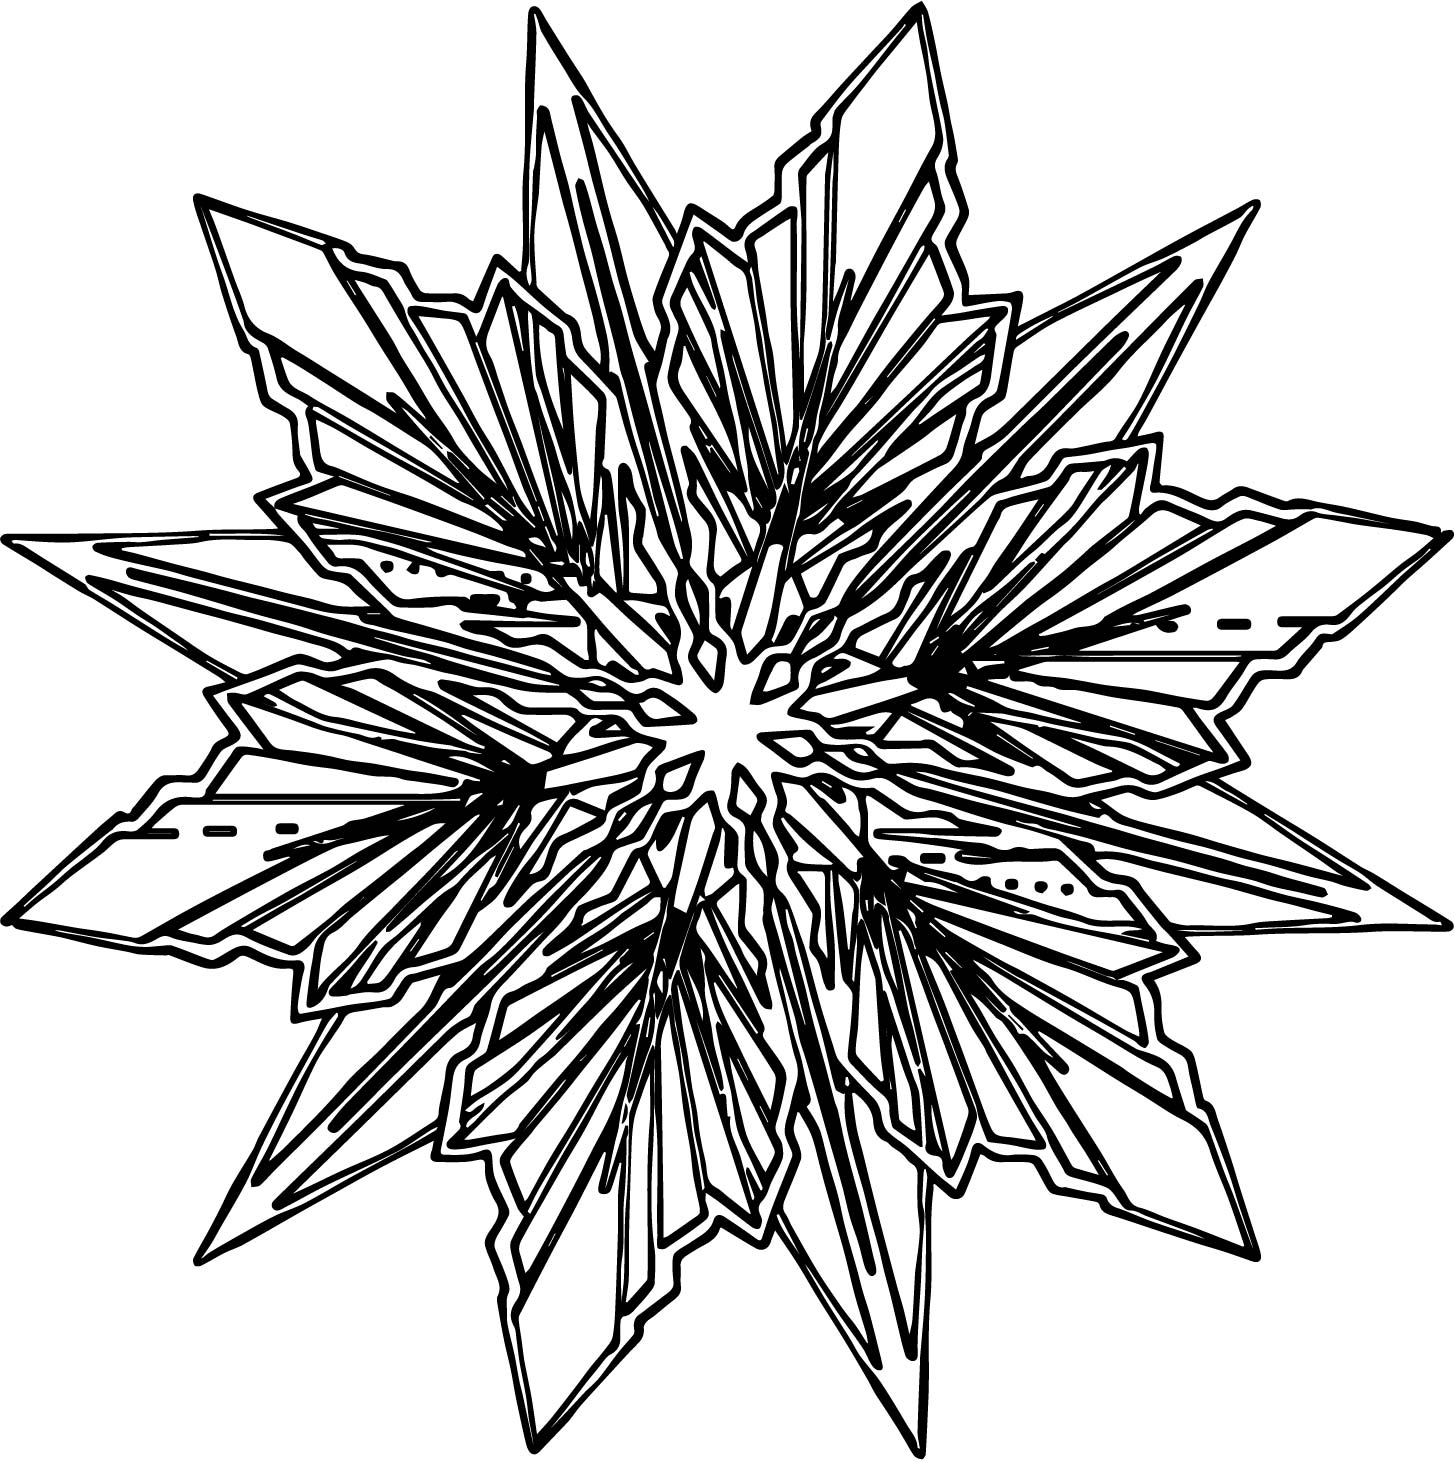 snowflakes coloring pages - frozen snowflake coloring page